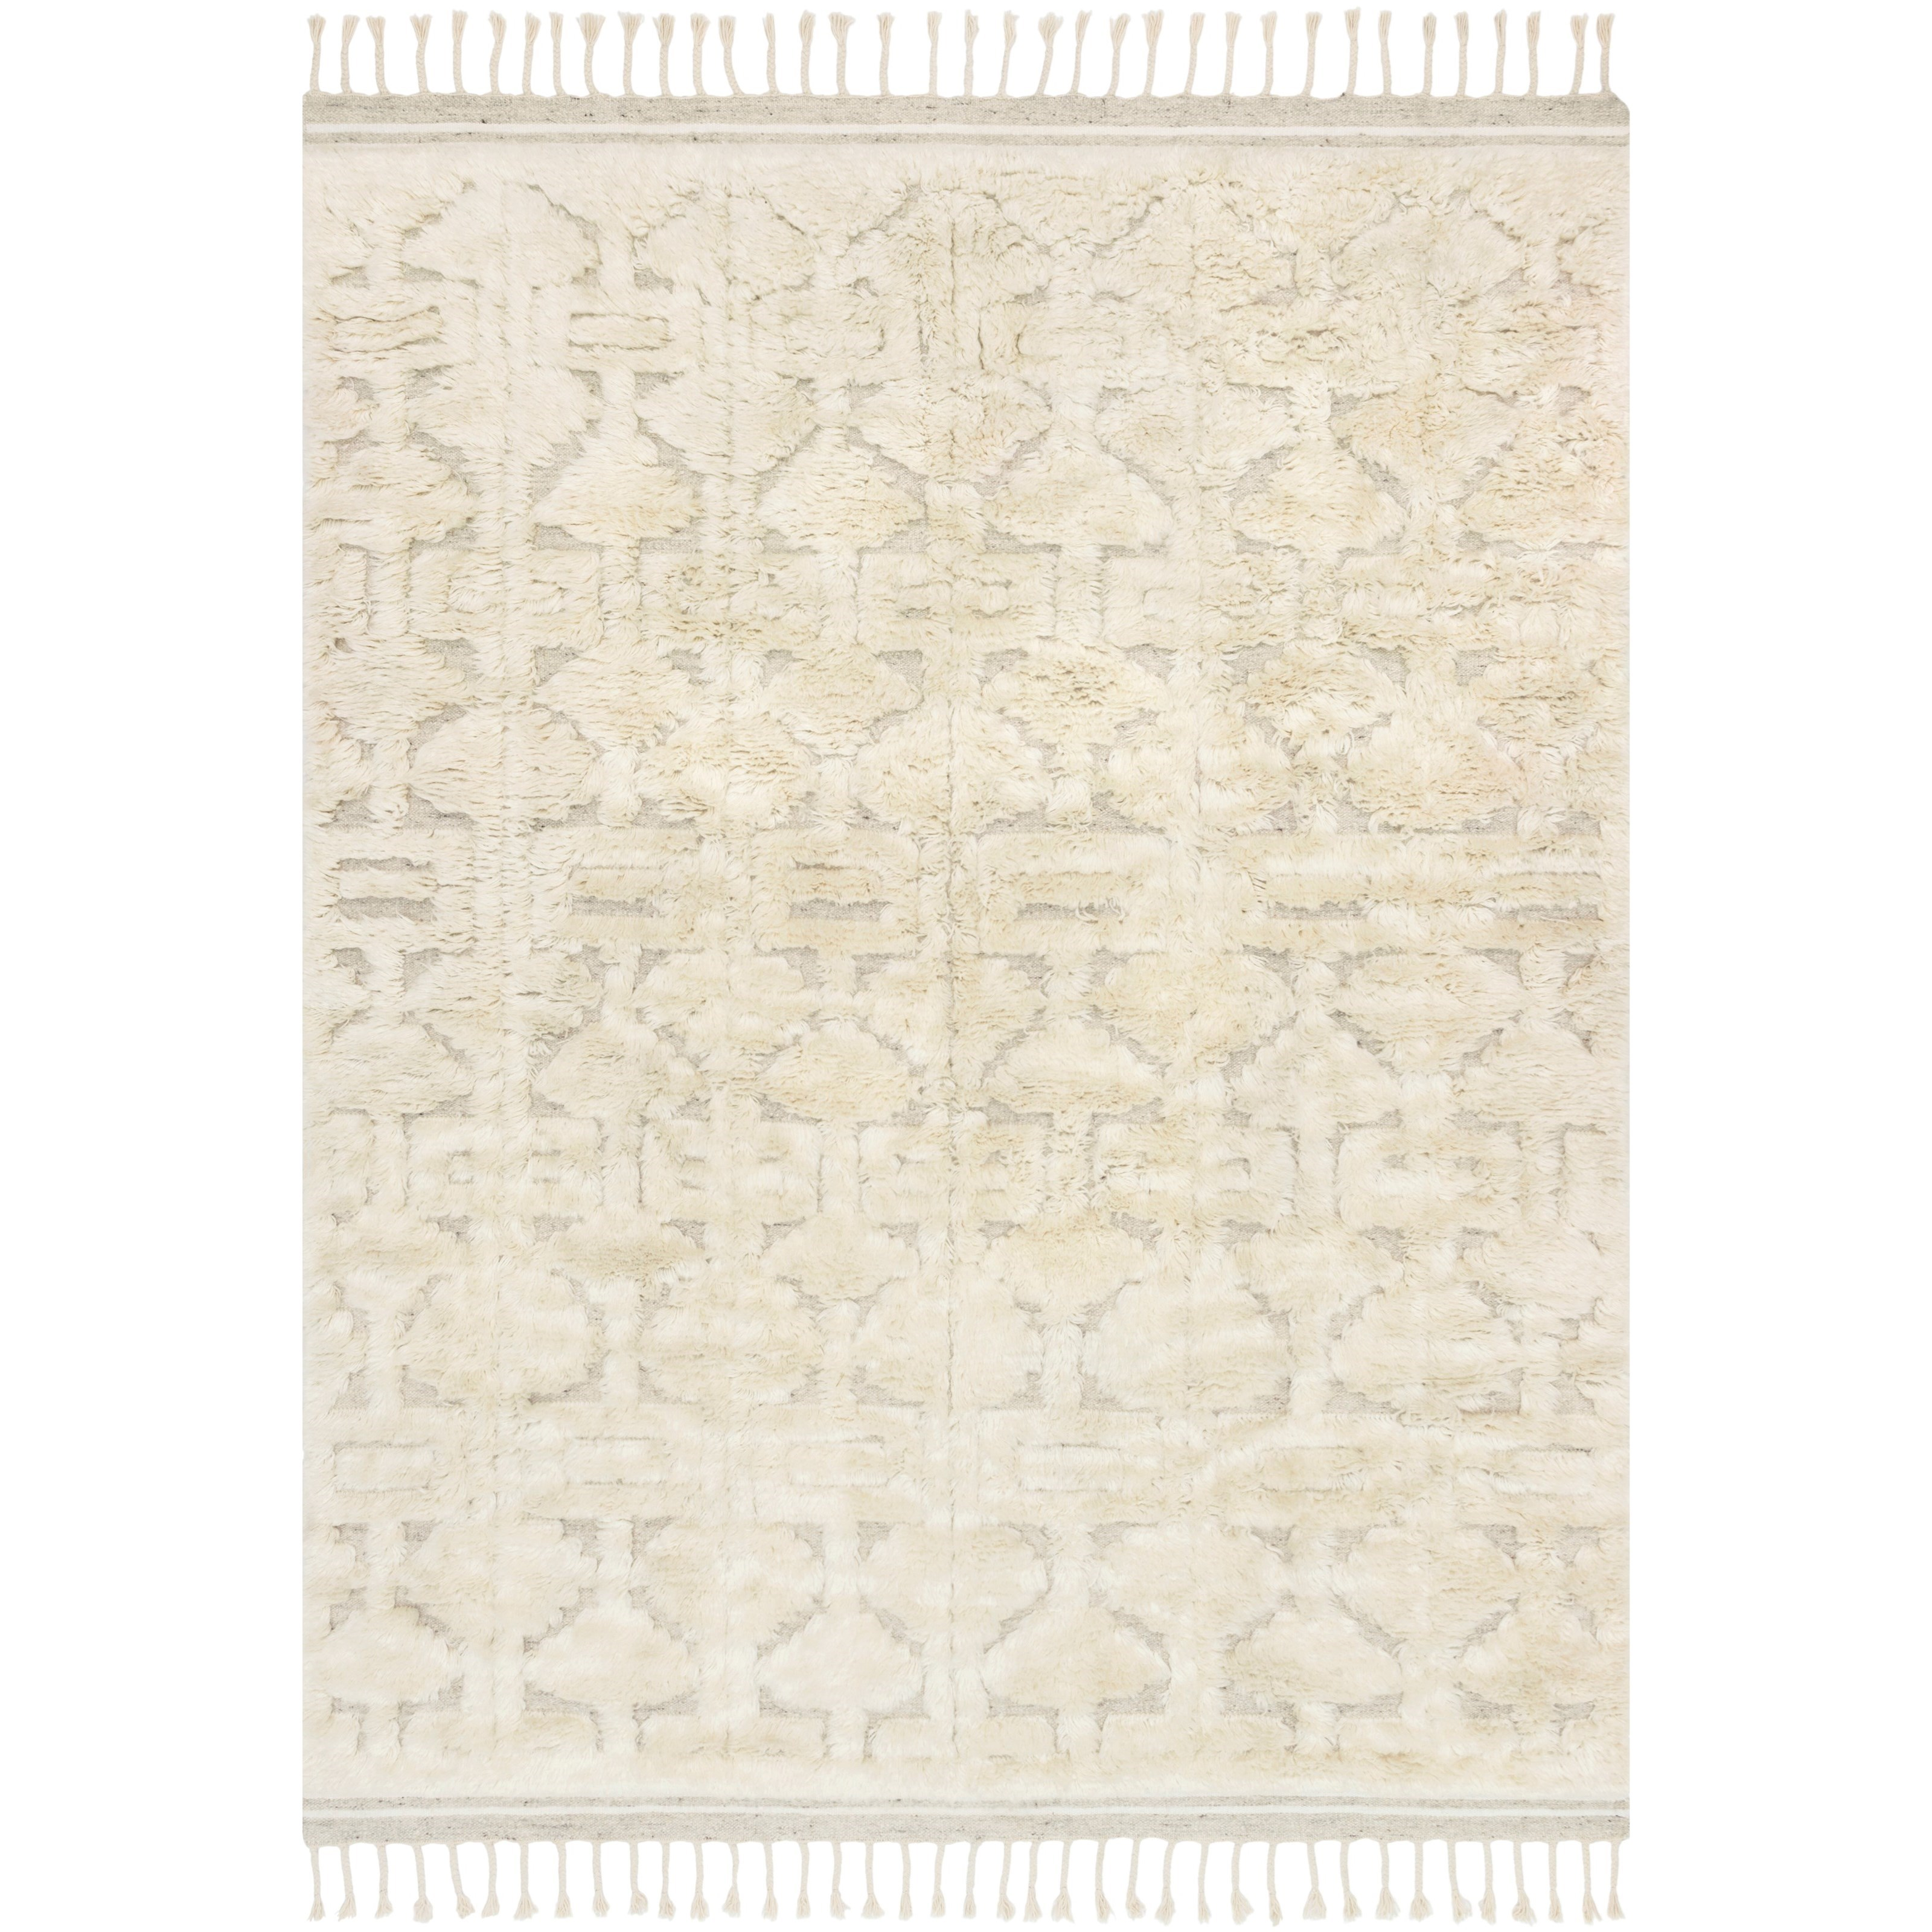 """Hygge 7'9"""" x 9'9"""" Oatmeal / Ivory Rug by Loloi Rugs at Virginia Furniture Market"""